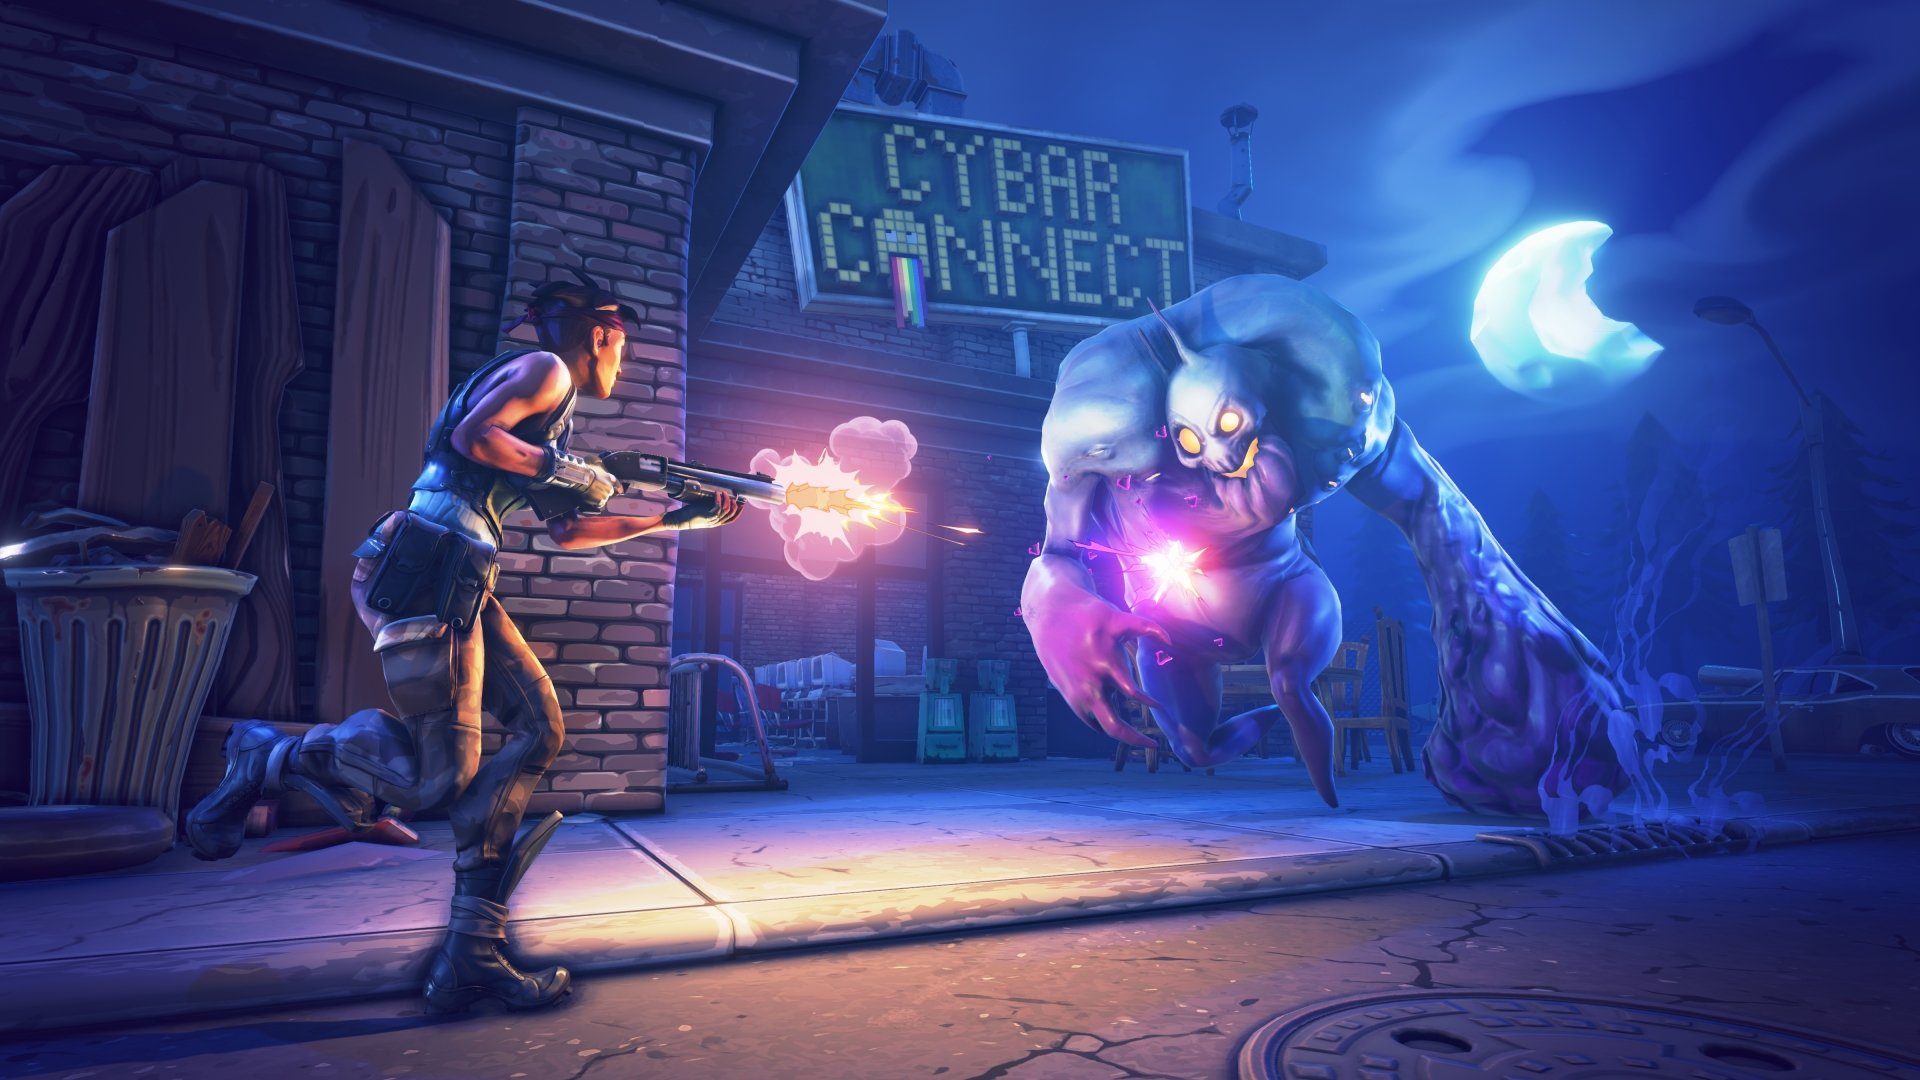 Fortnite hd wallpapers free download for desktop